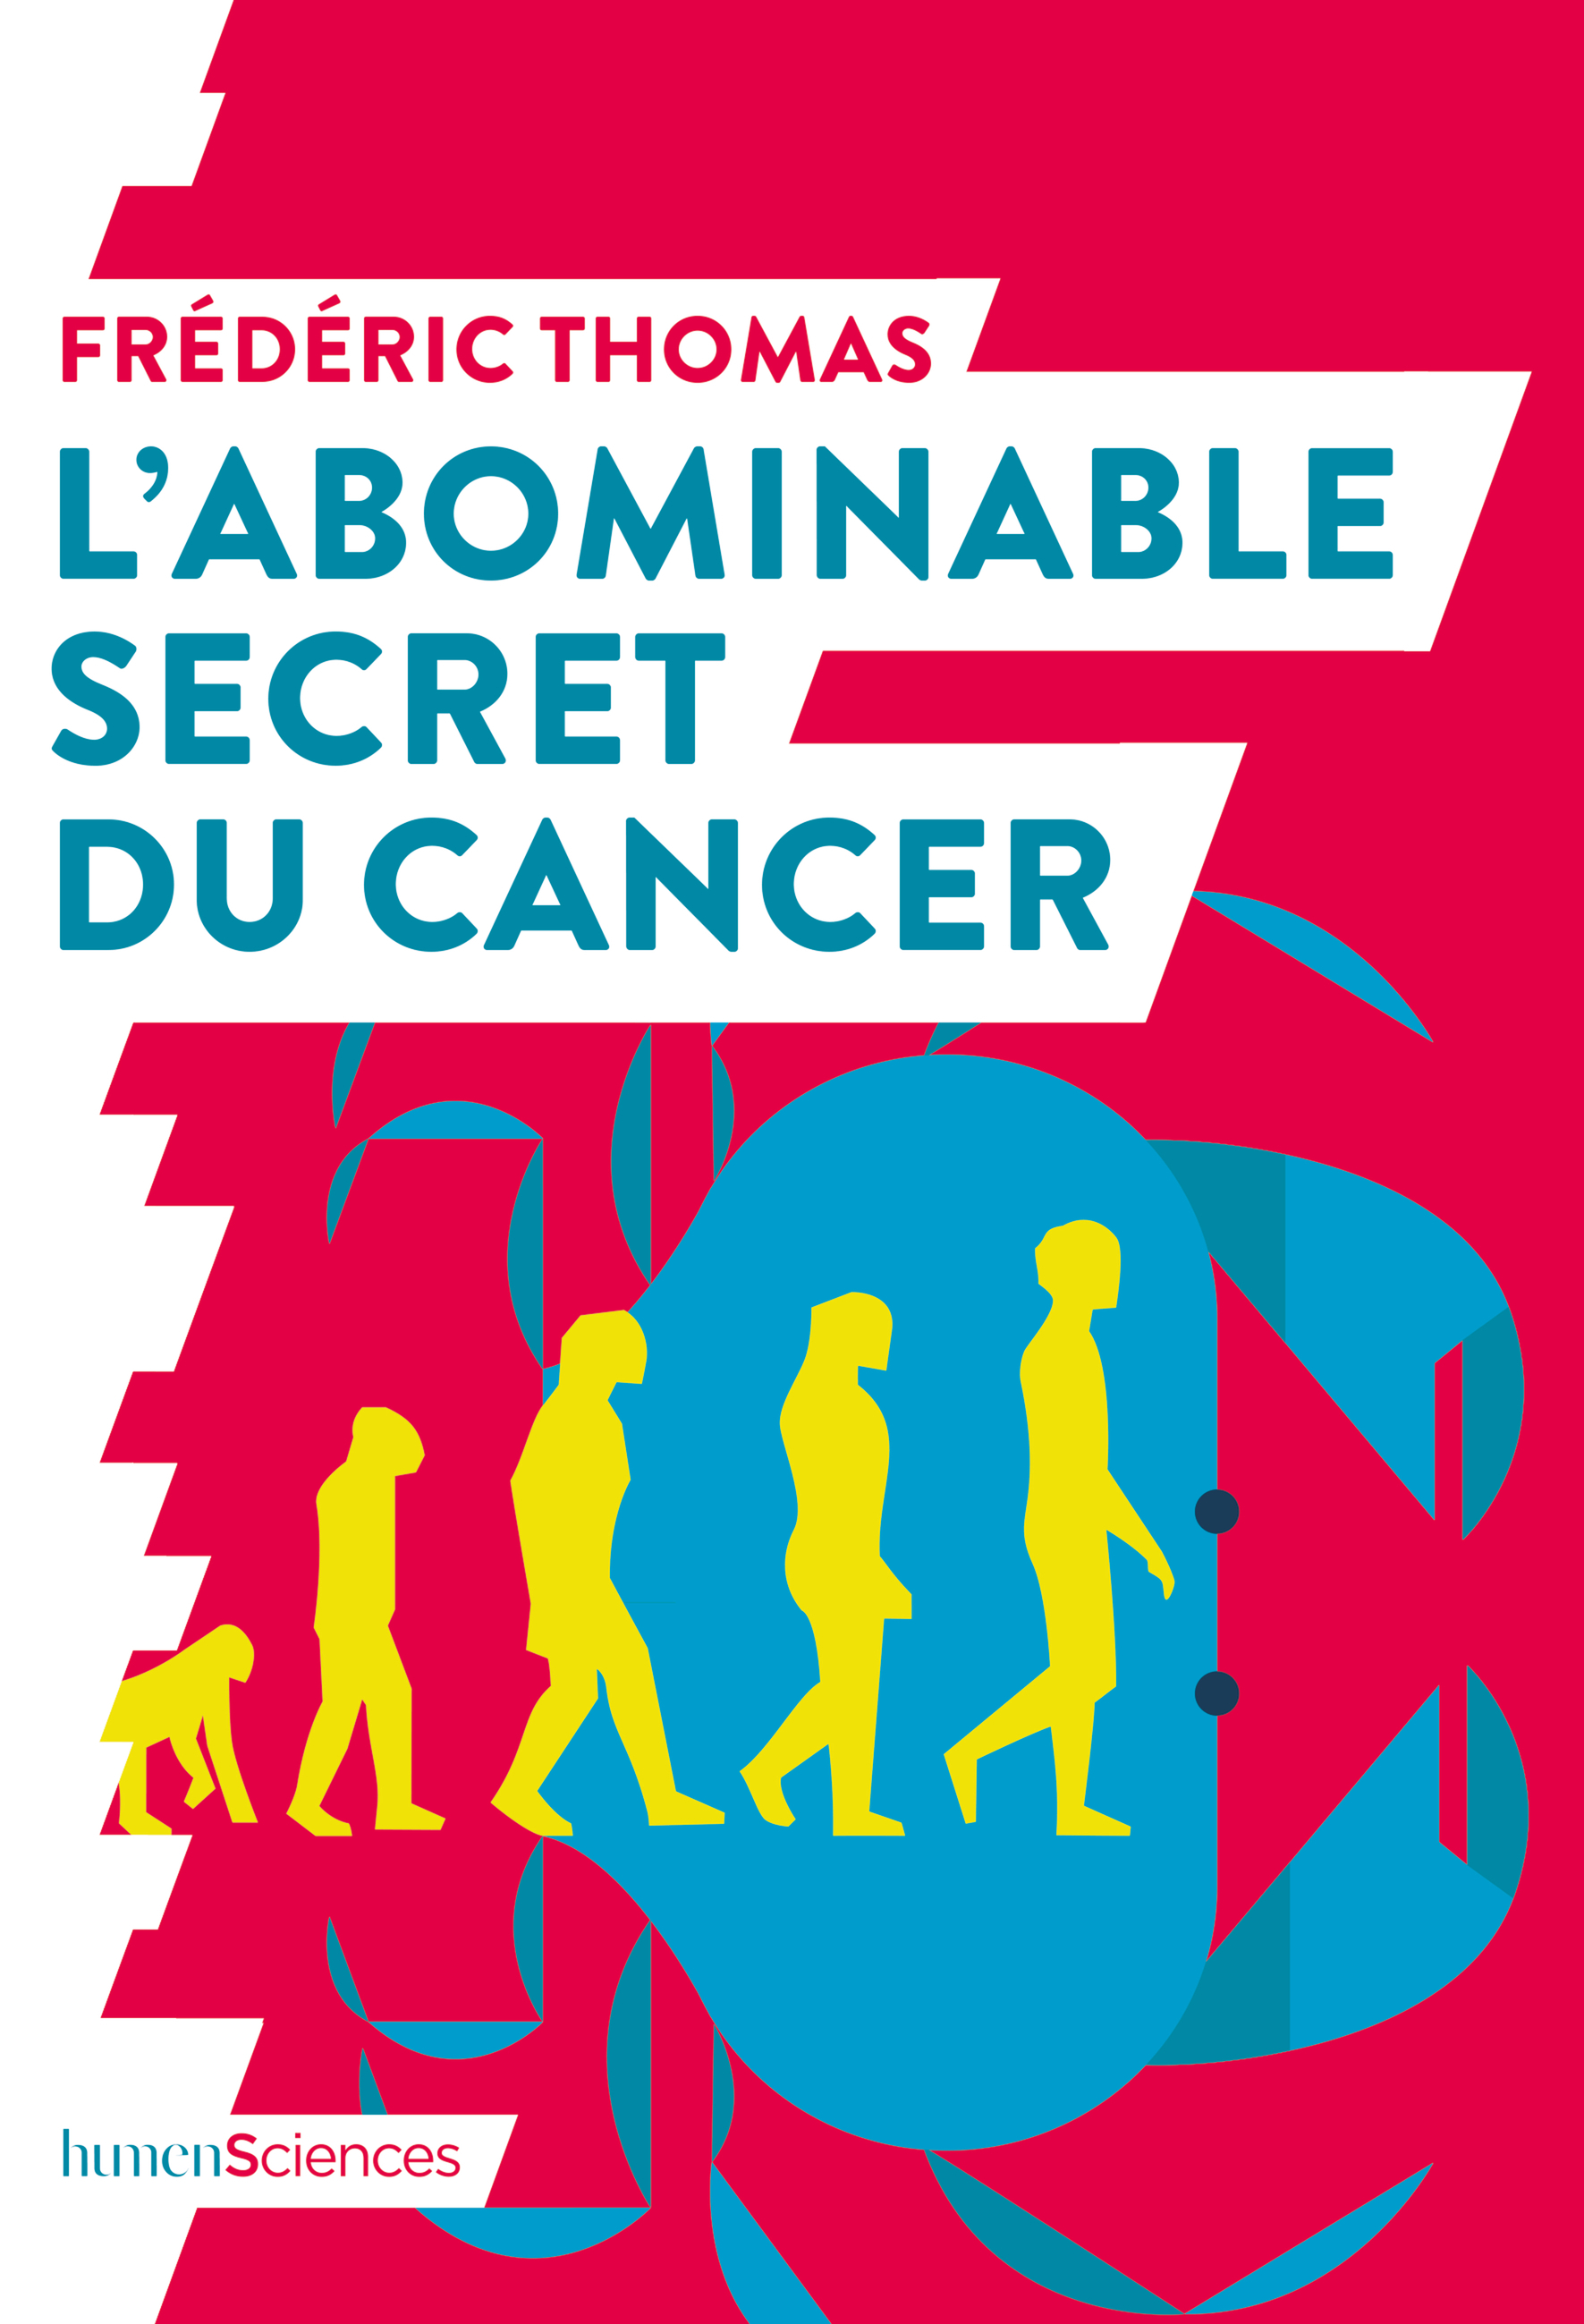 L'ABOMINABLE SECRET DU CANCER